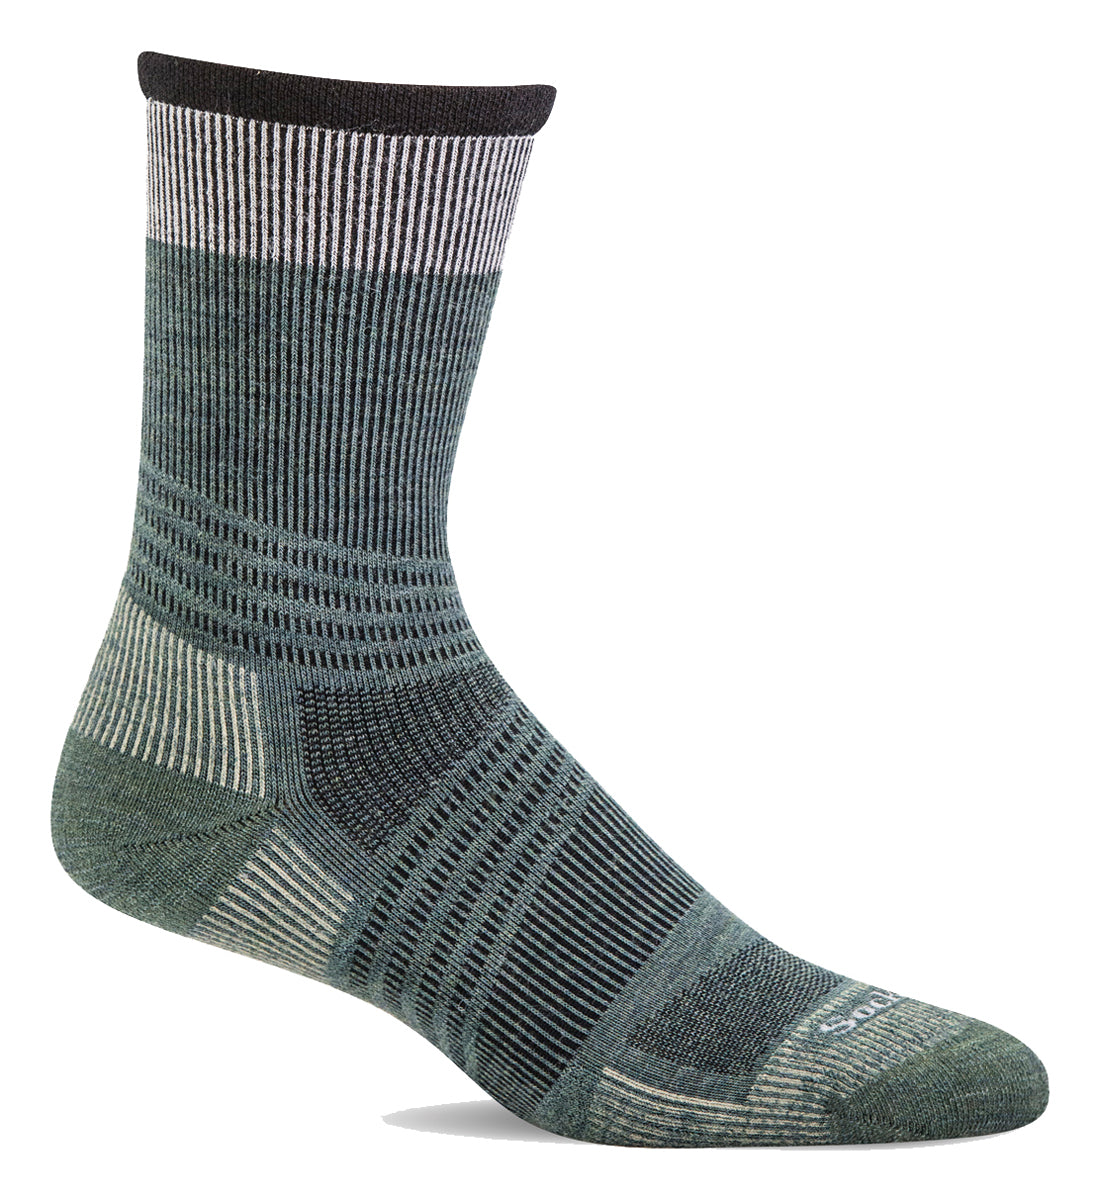 Men's Sockwell Summit Crew II Firm Graduated Compression Sock in Woodland from the front view